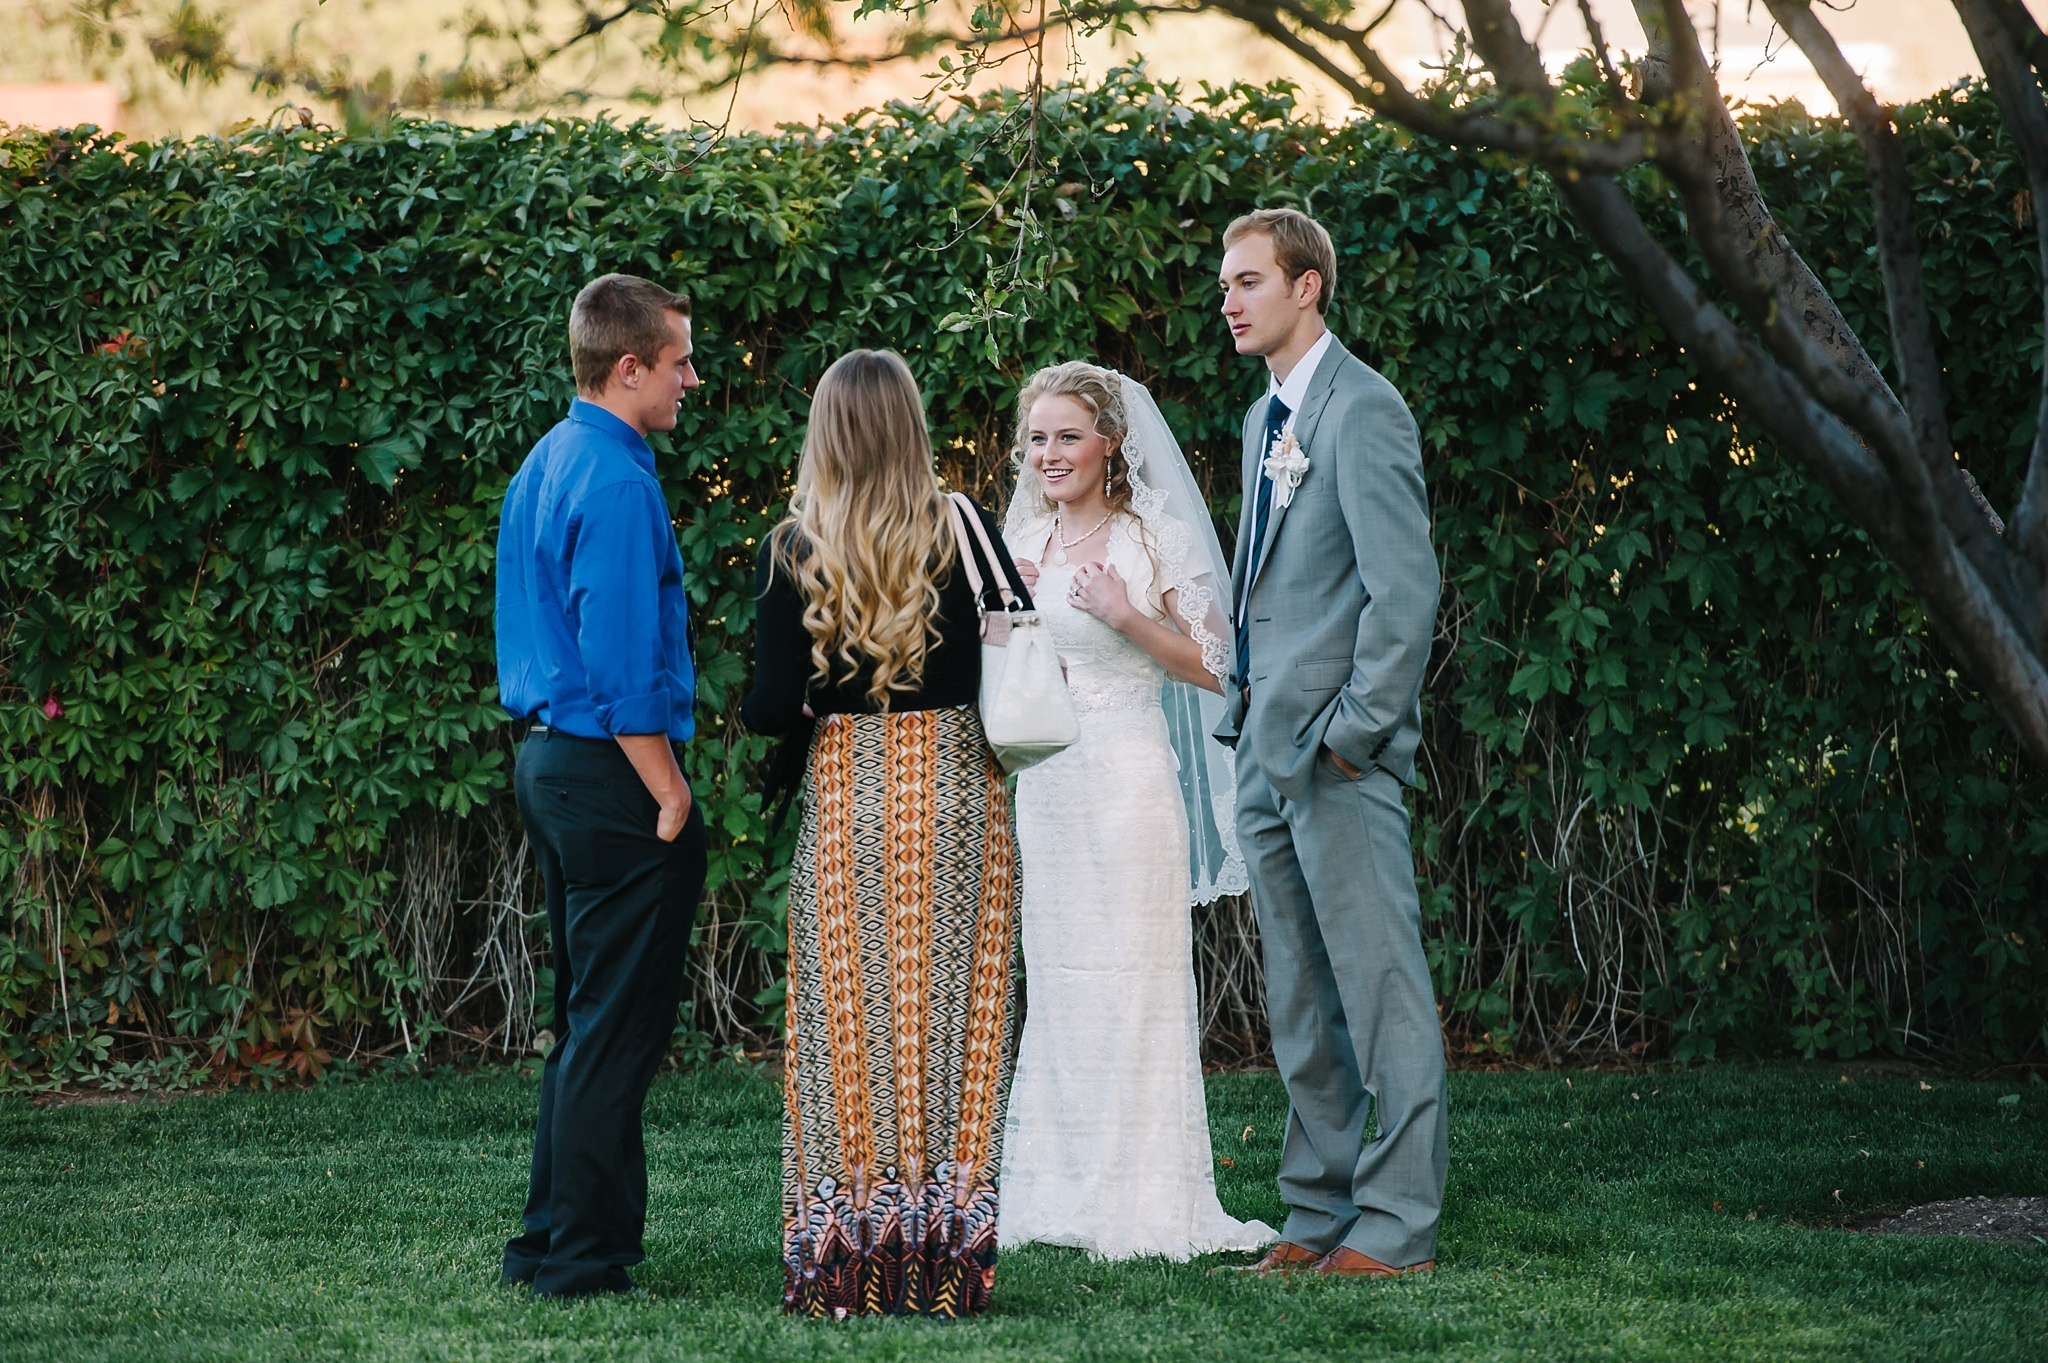 SLC Wedding Photographer Ali Sumsion176